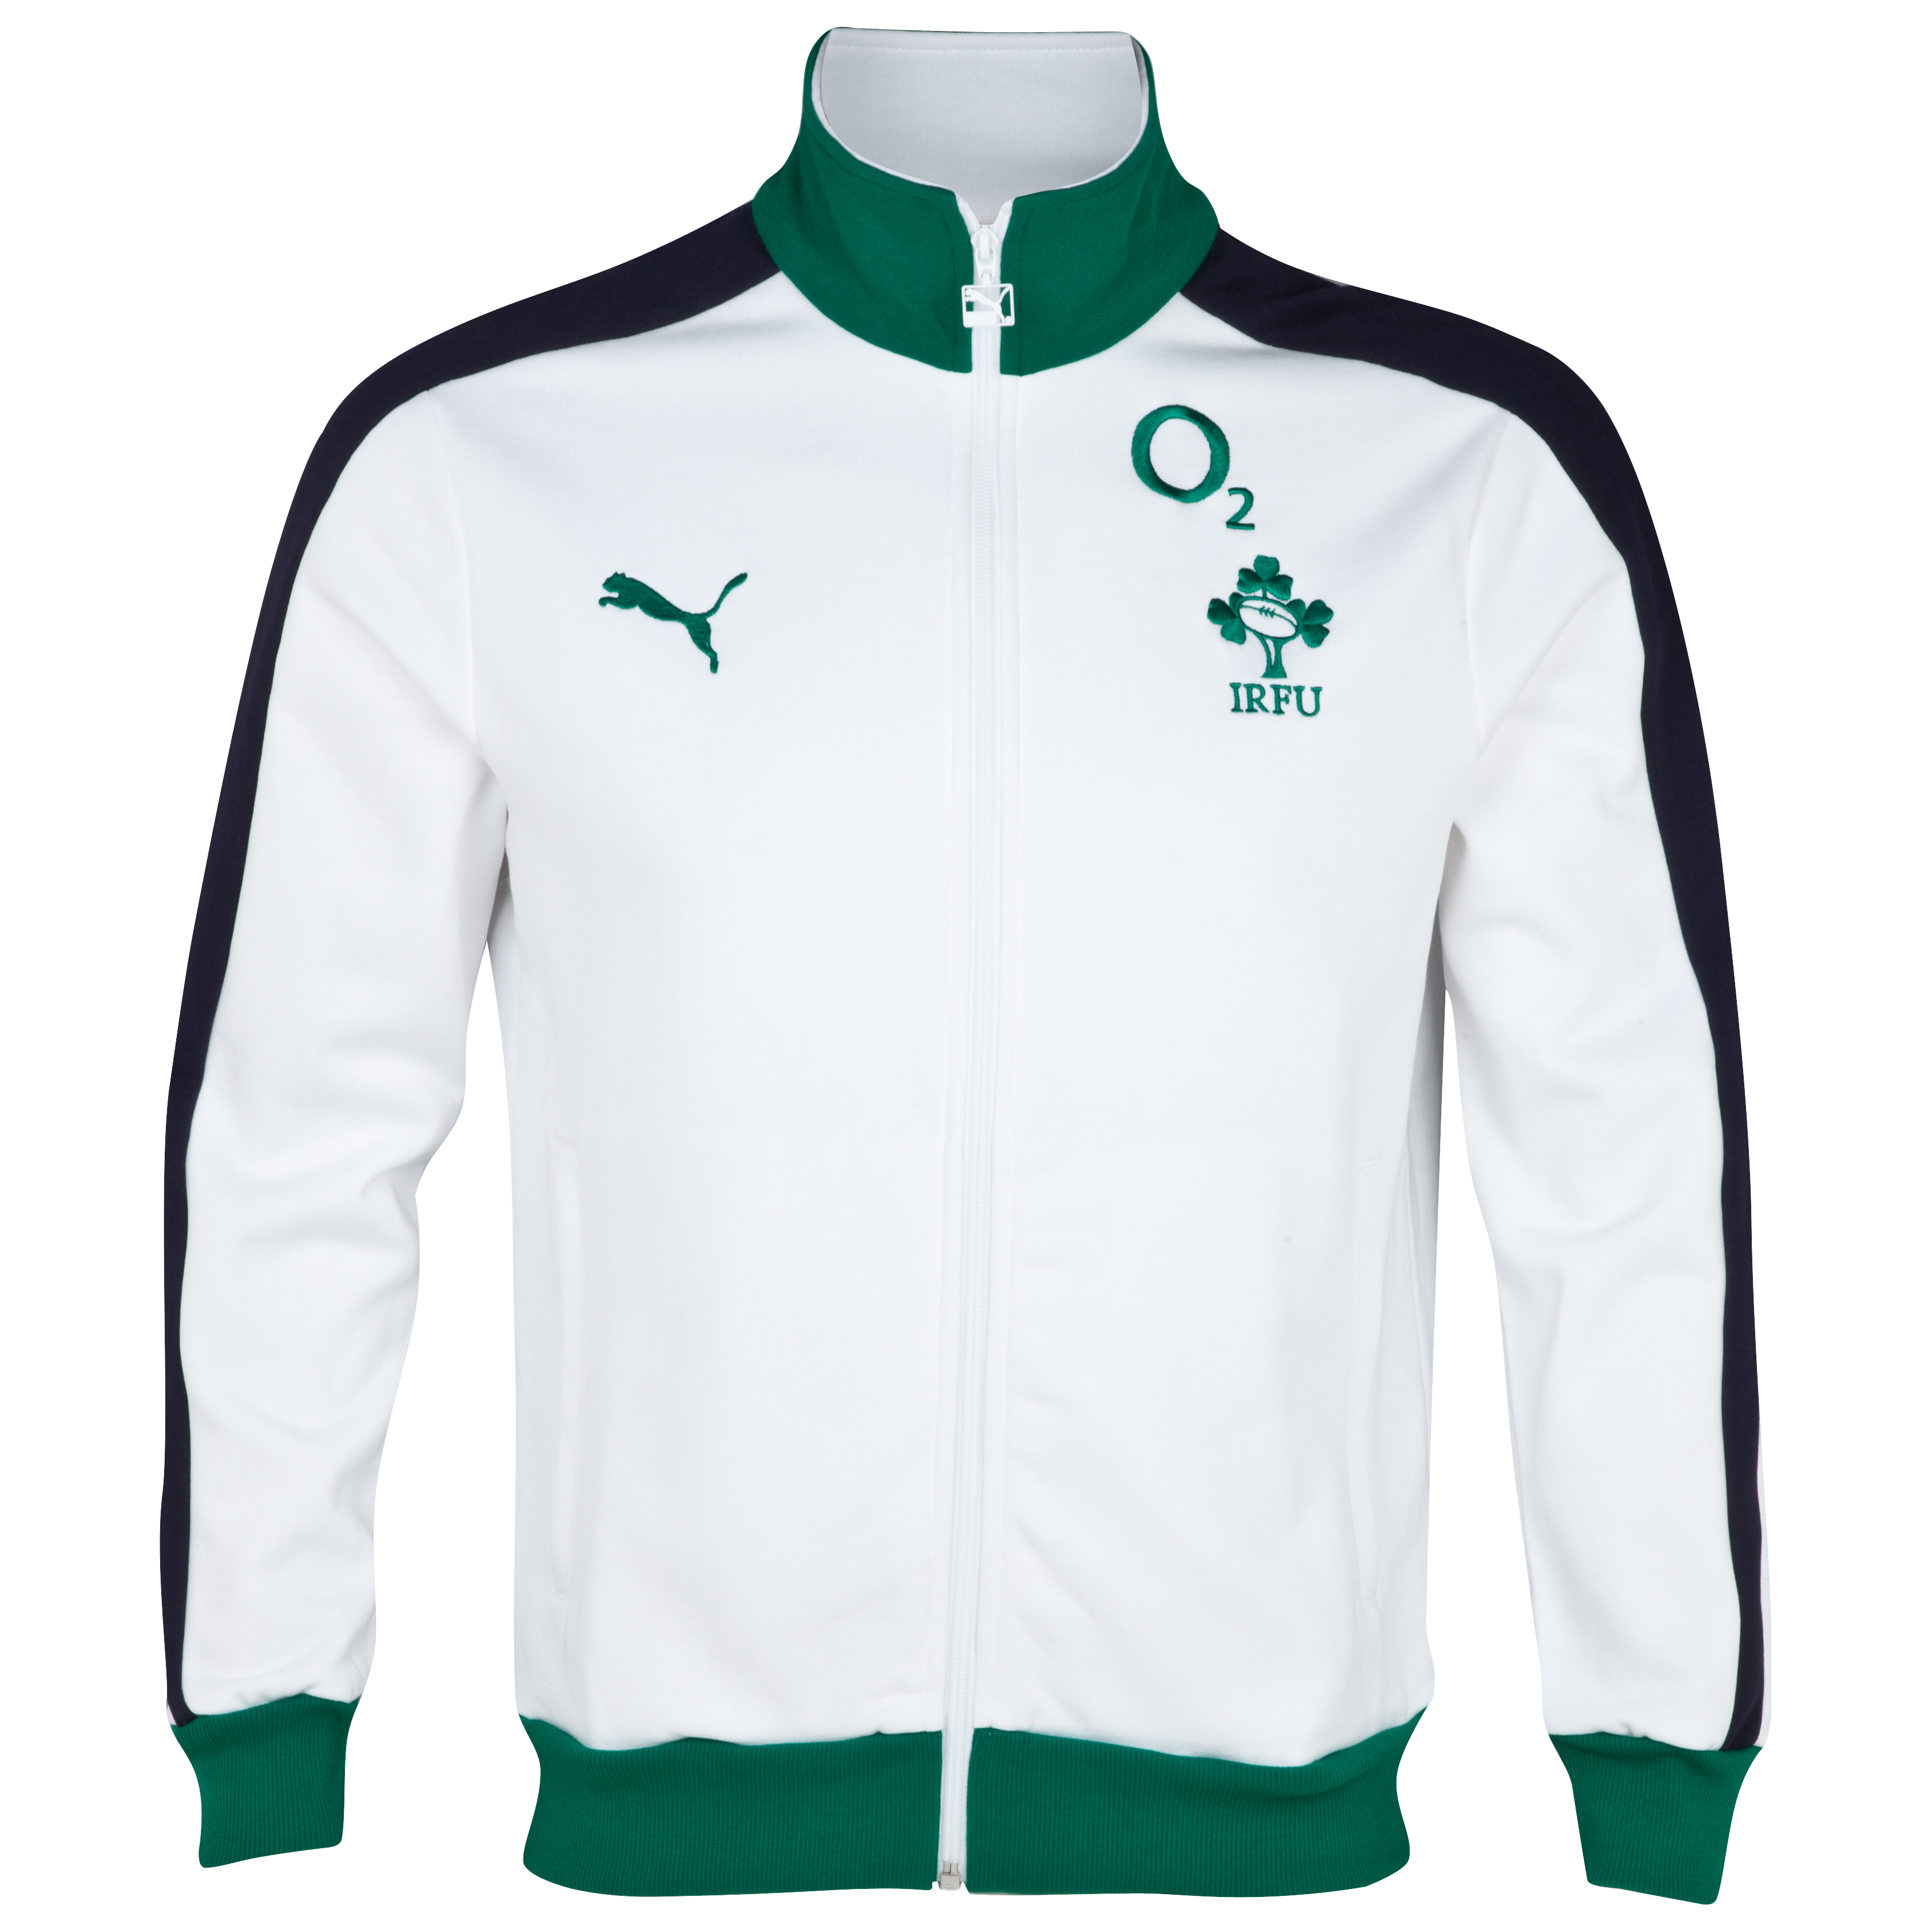 Ireland Rugby T7 Track Jacket - White/New Navy/Powder Green